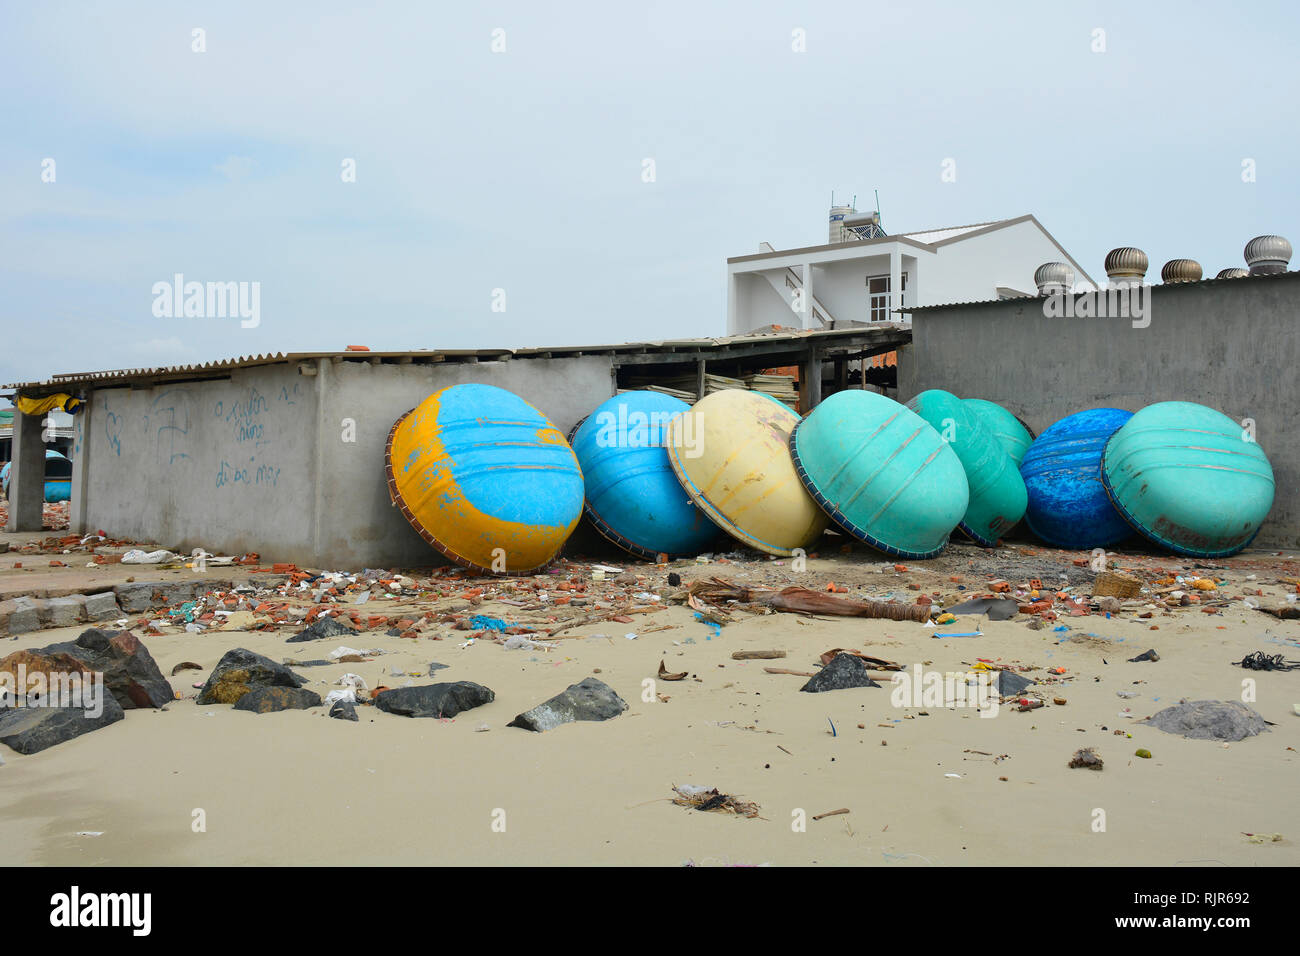 Mui Ne, Vietnam - December 27th 2017. Traditional fishing boats in Mui Ne Fishing Village propped up against a house. The beach is littered with rubbi Stock Photo